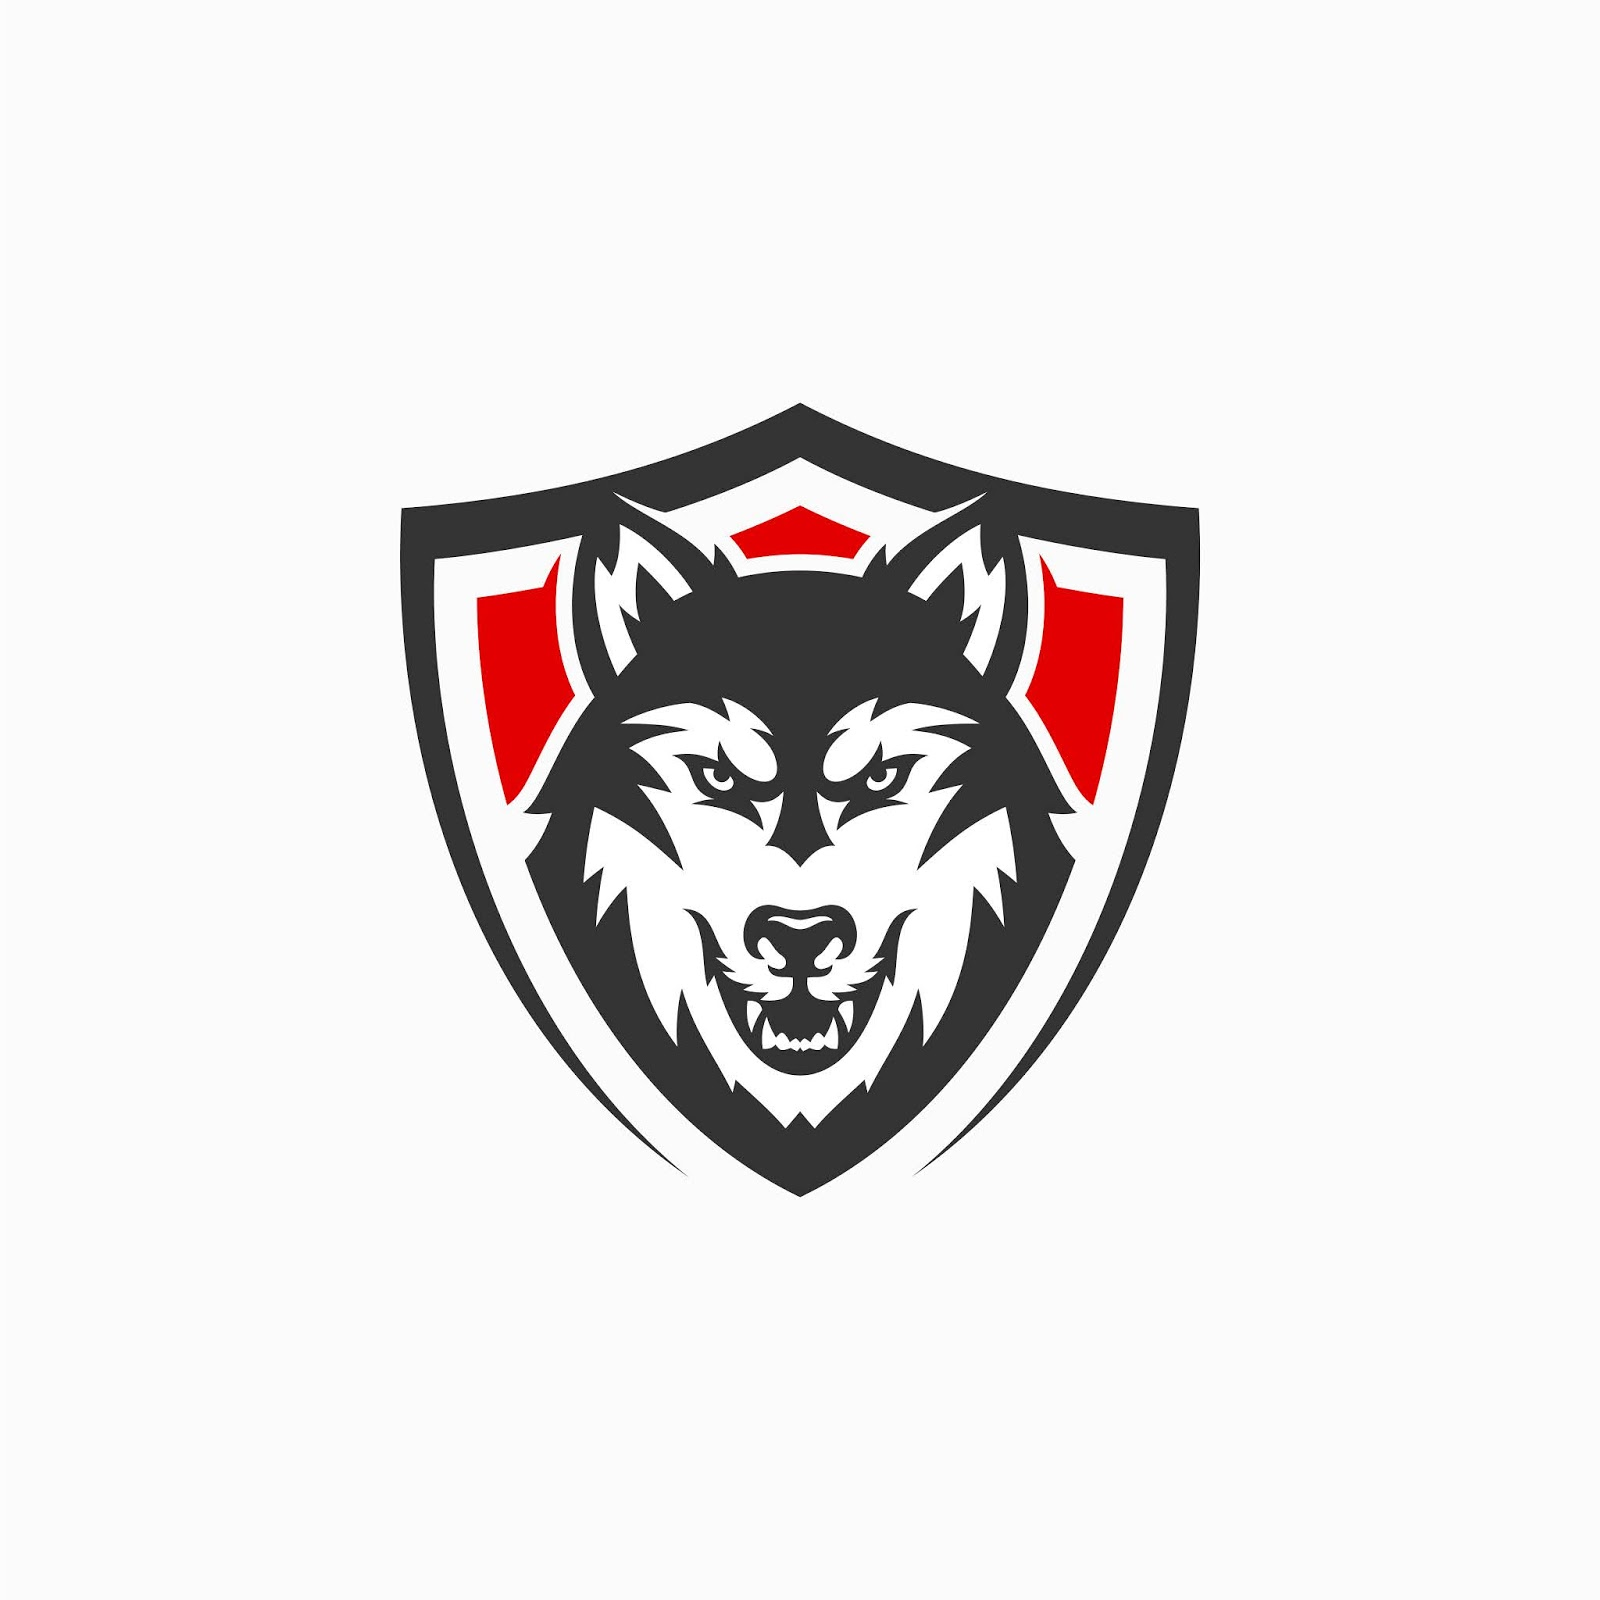 Angry Wolf Mascot Logo Free Download Vector CDR, AI, EPS and PNG Formats